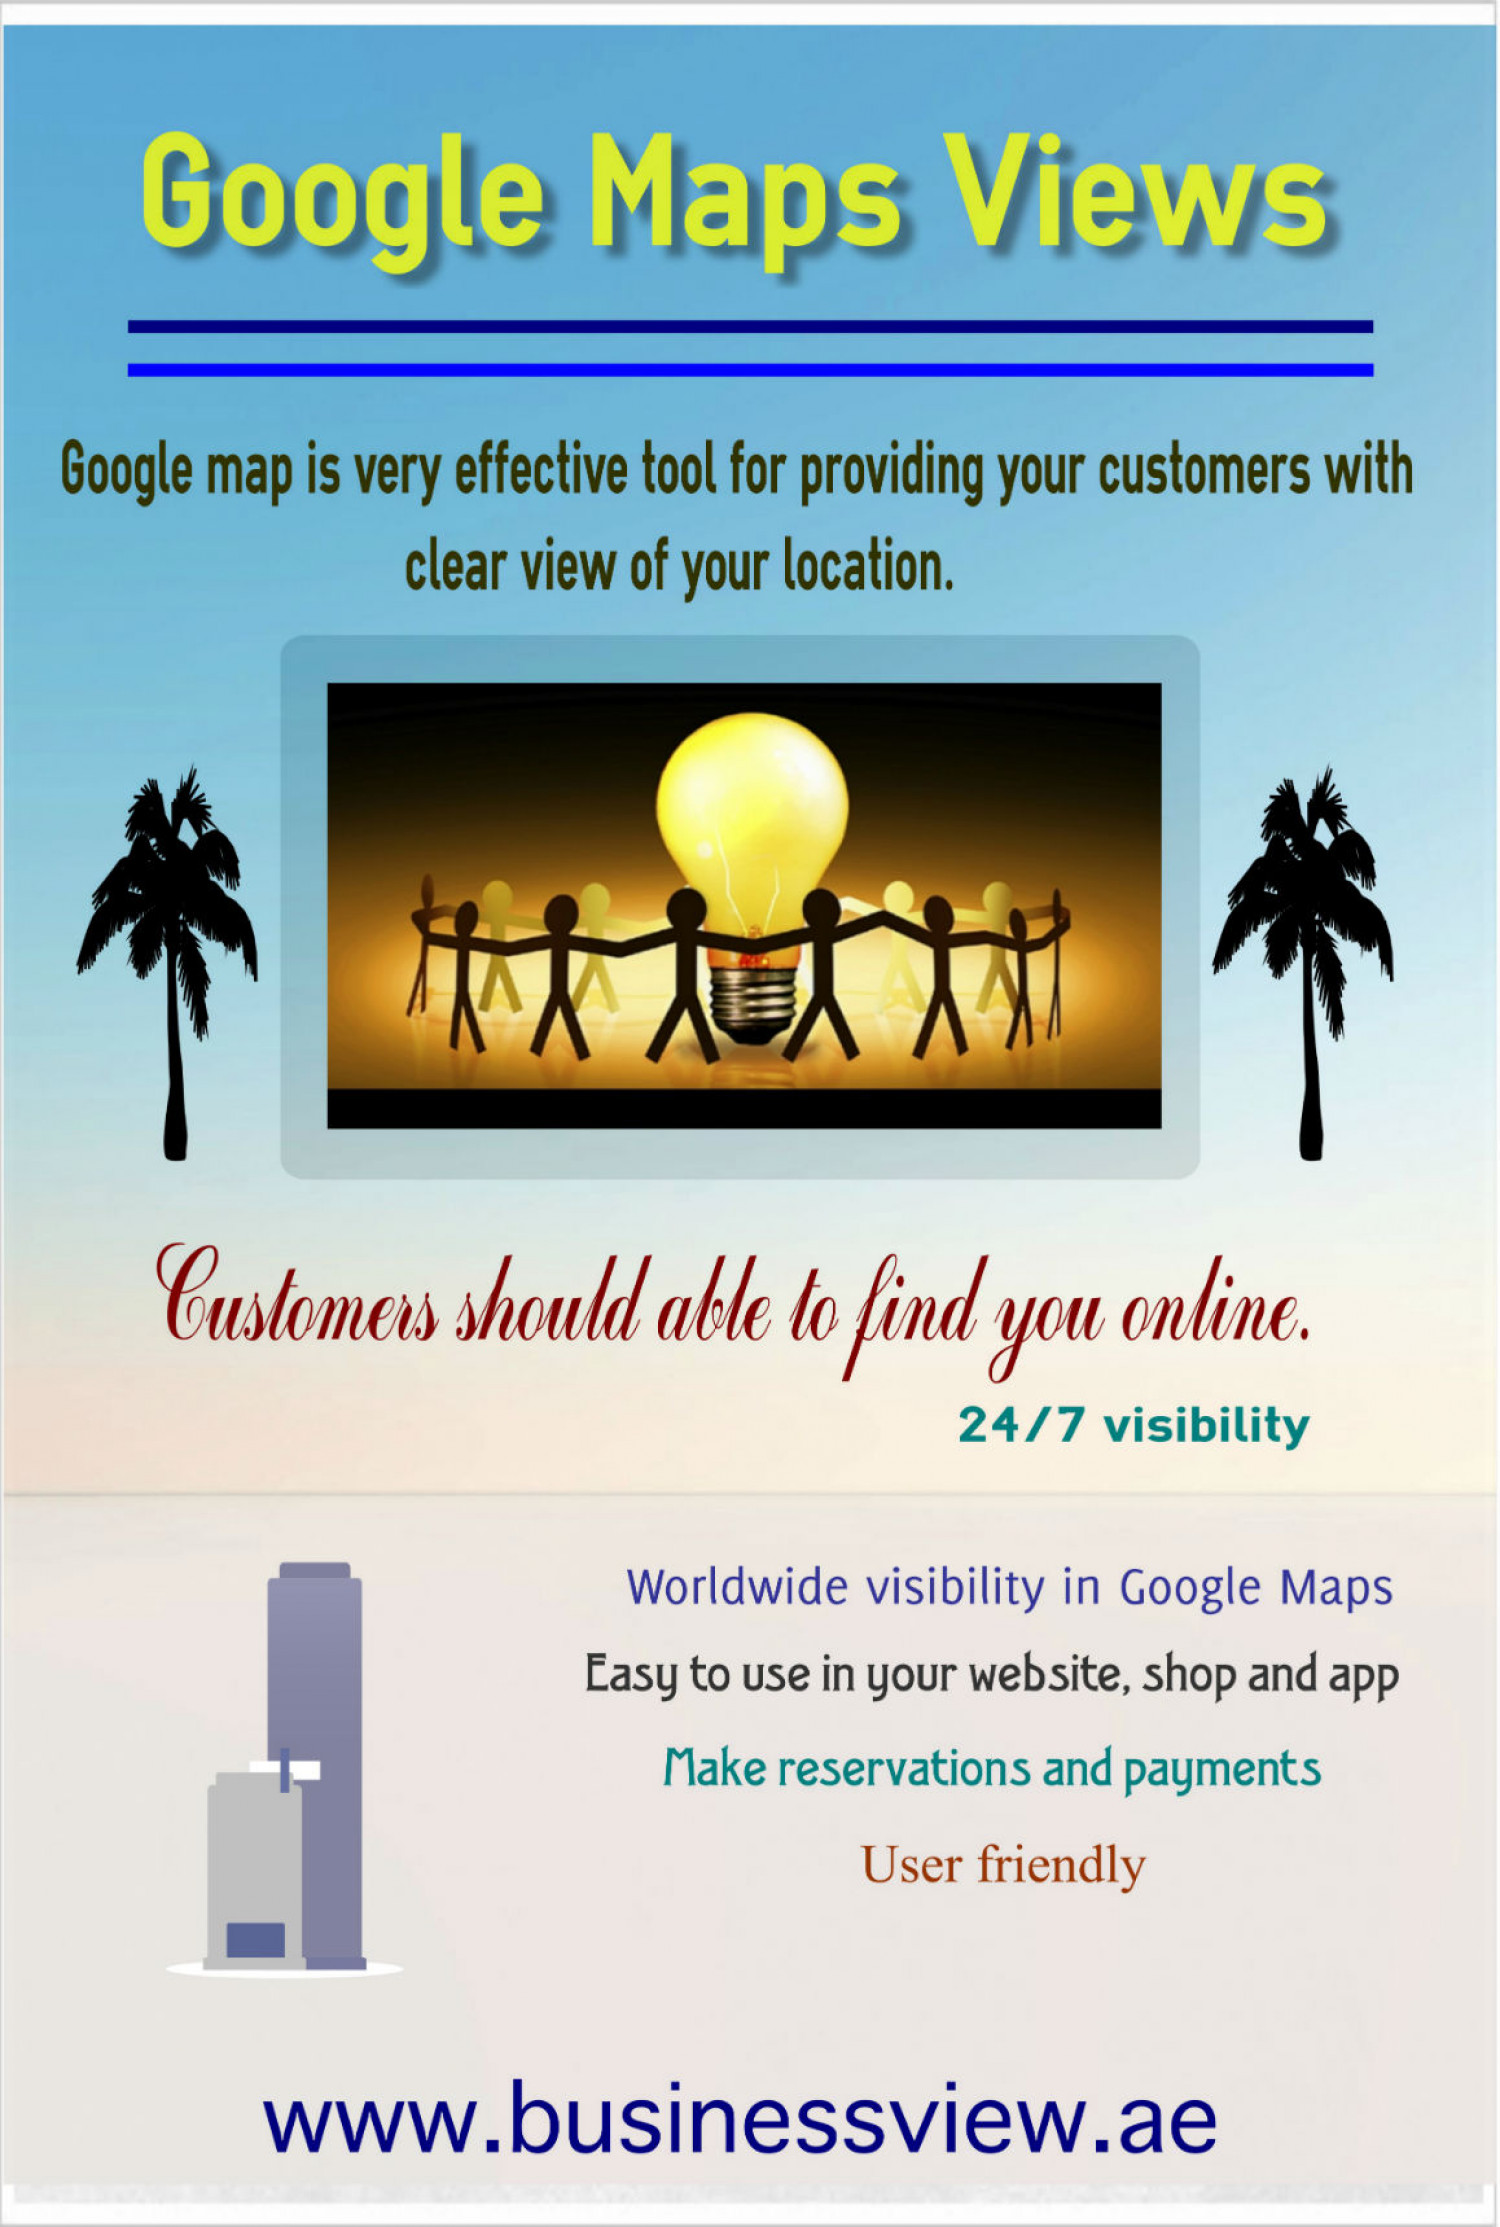 Google maps views Infographic